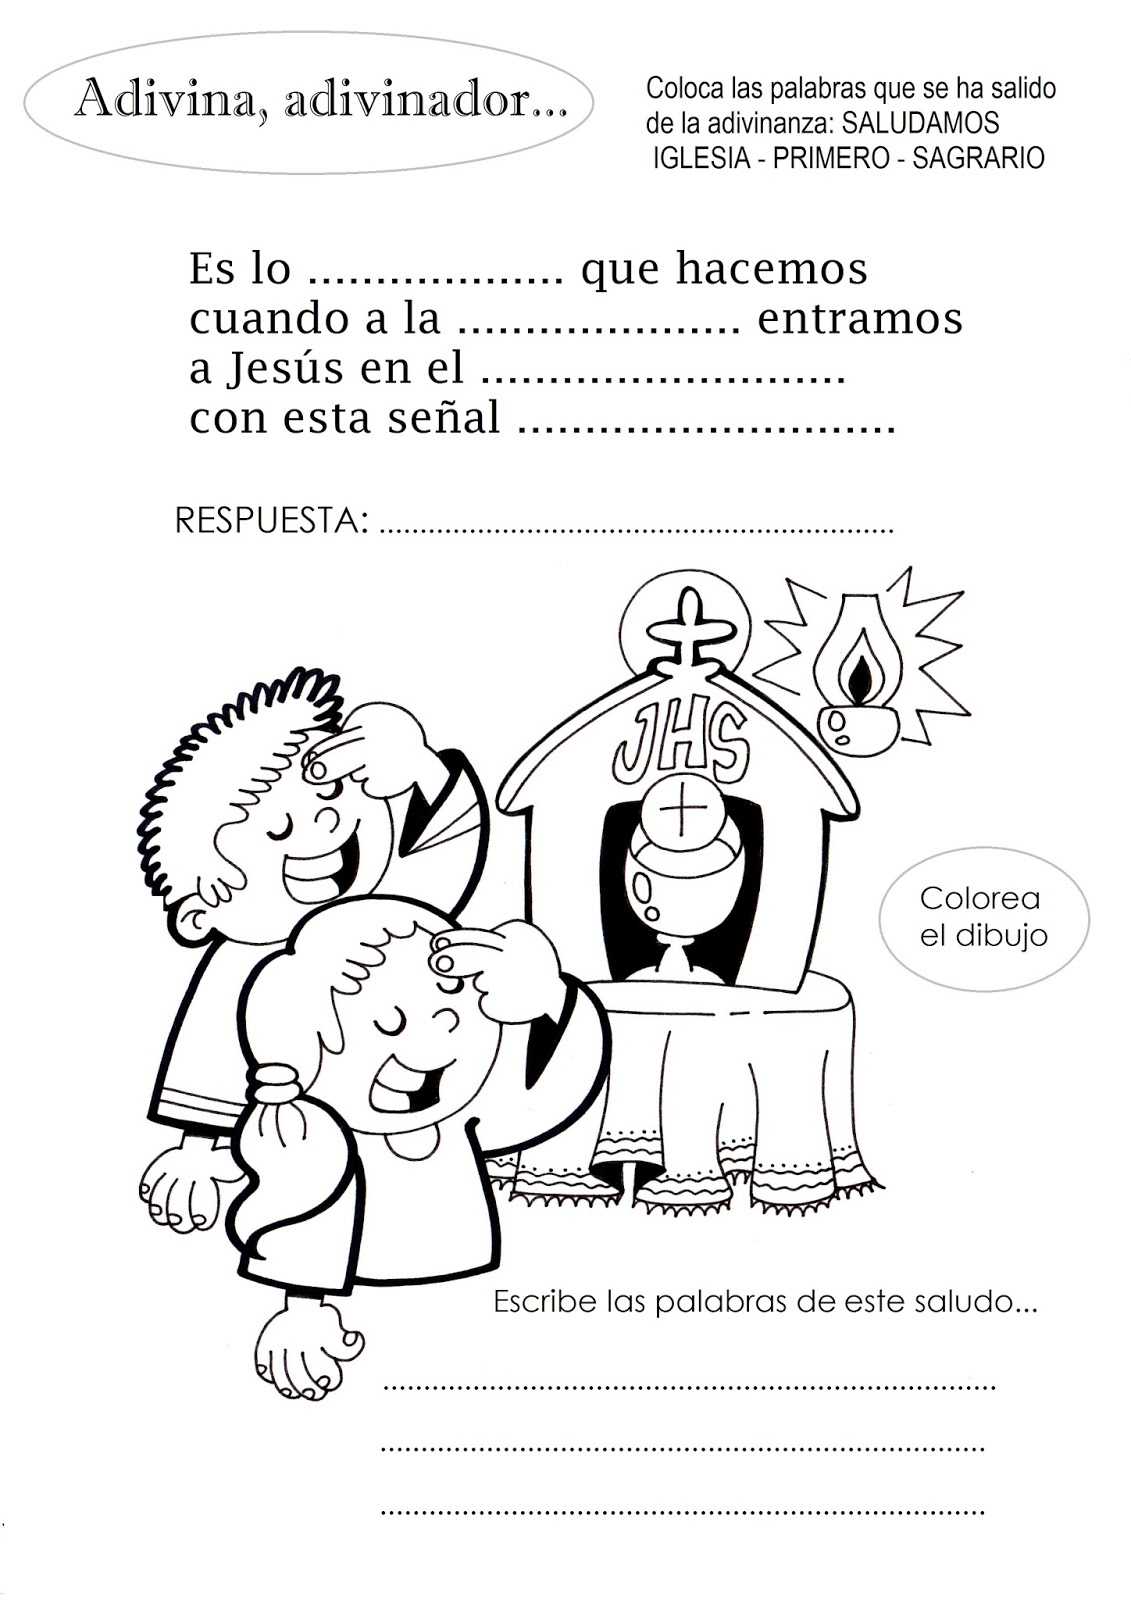 La Catequesis El Blog De Sandra Recursos Catequesis La